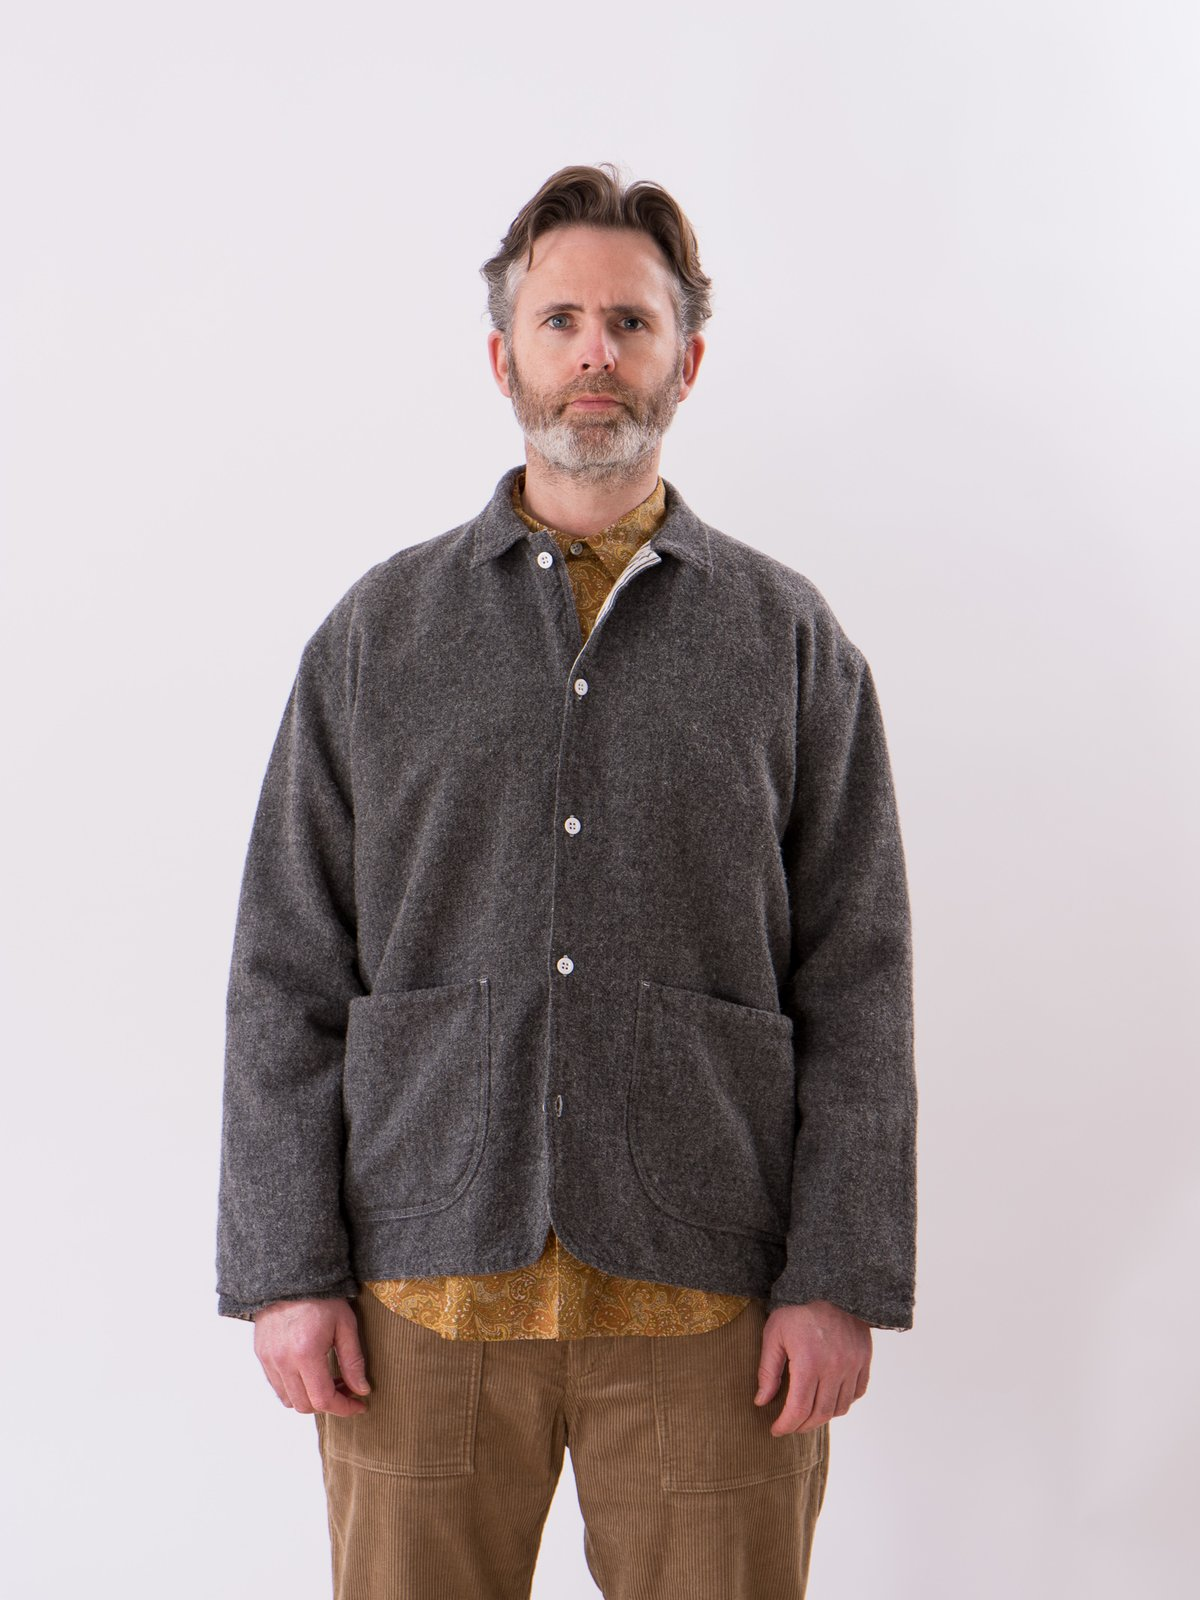 Charcoal Weavers Stock Curve Front Jacket - Image 2